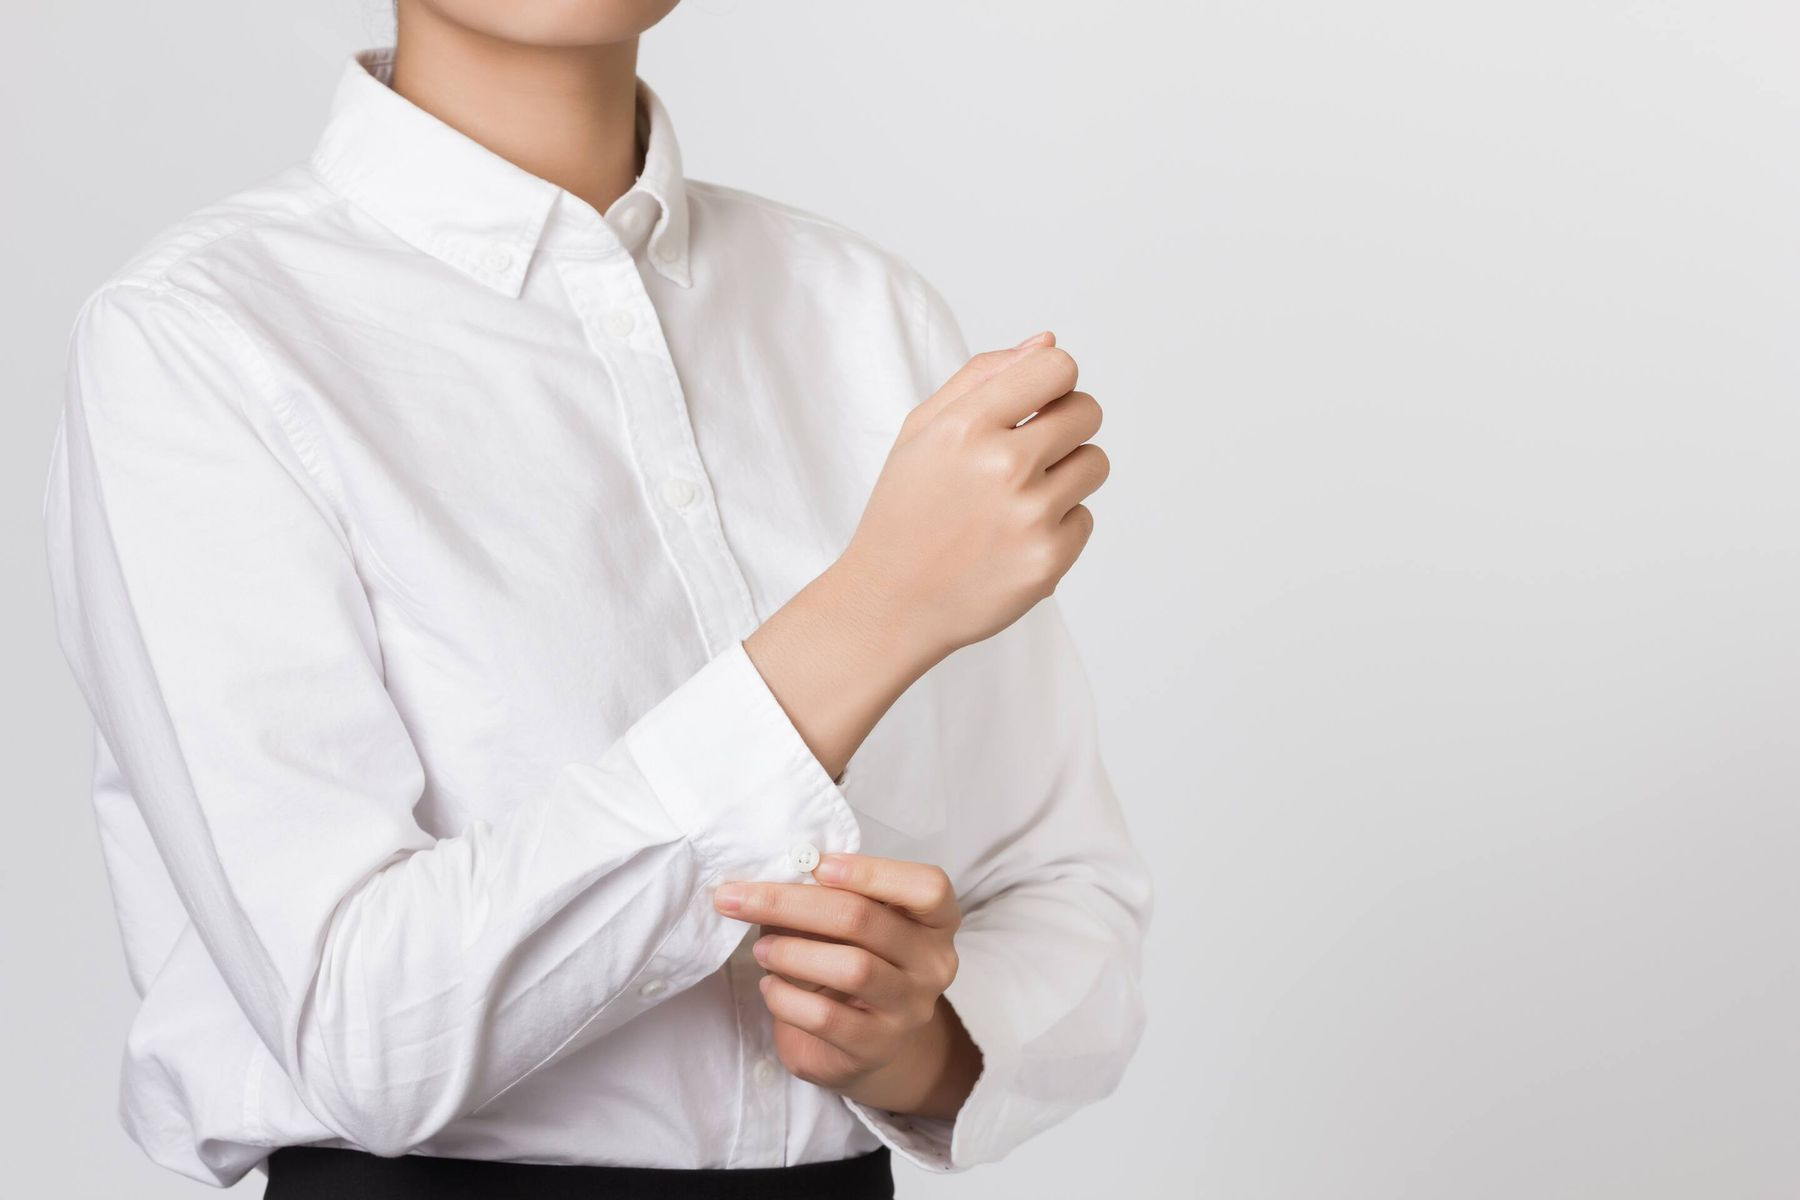 Steps to Remove Black Grease From Your White Office Shirt